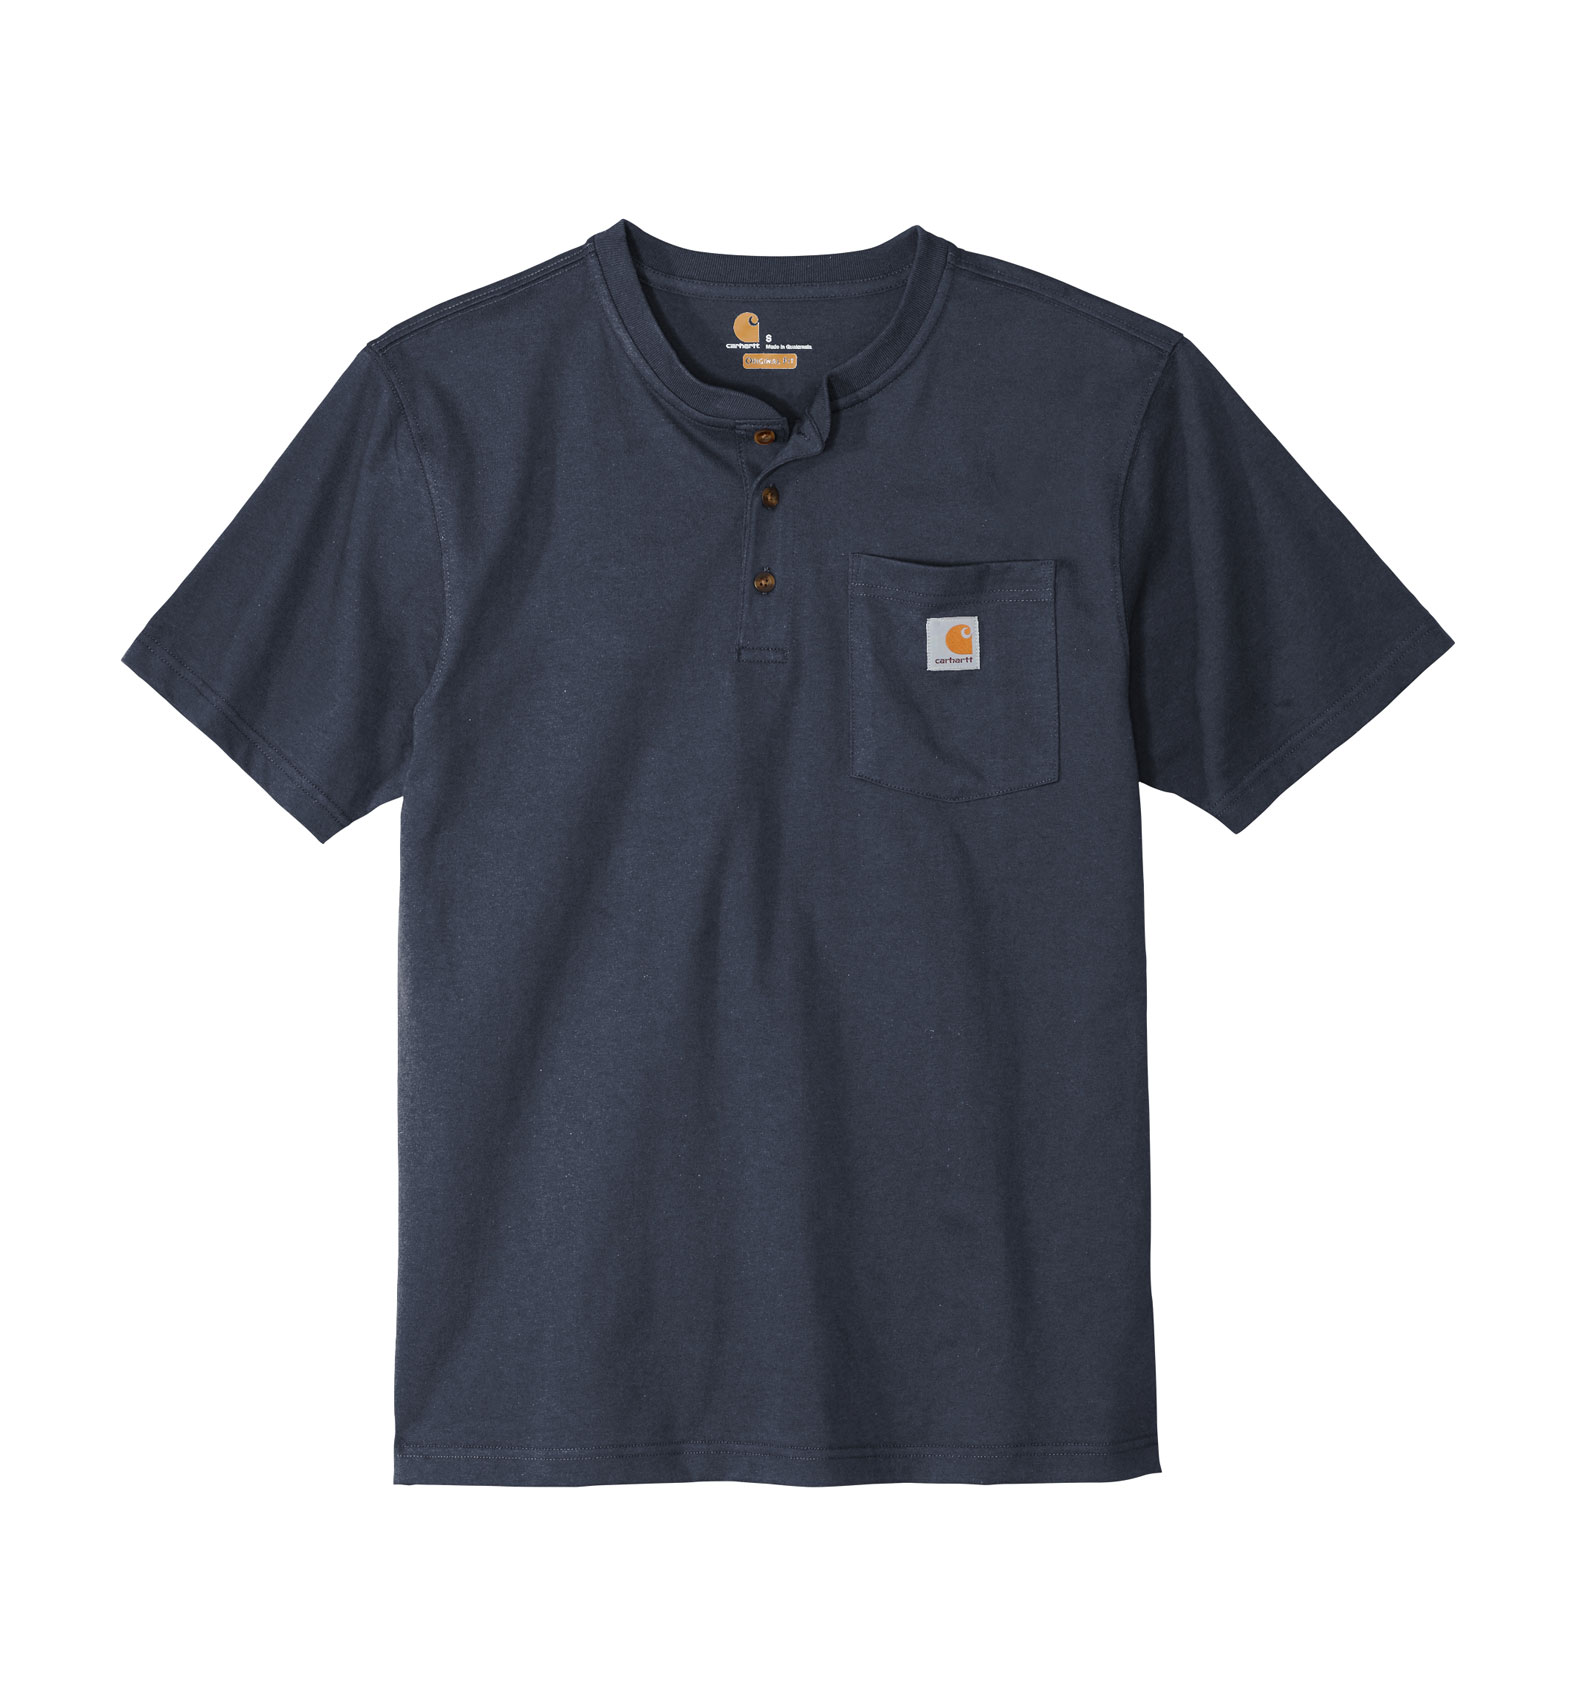 Carhartt® Adult Short Sleeve Henley T-Shirt